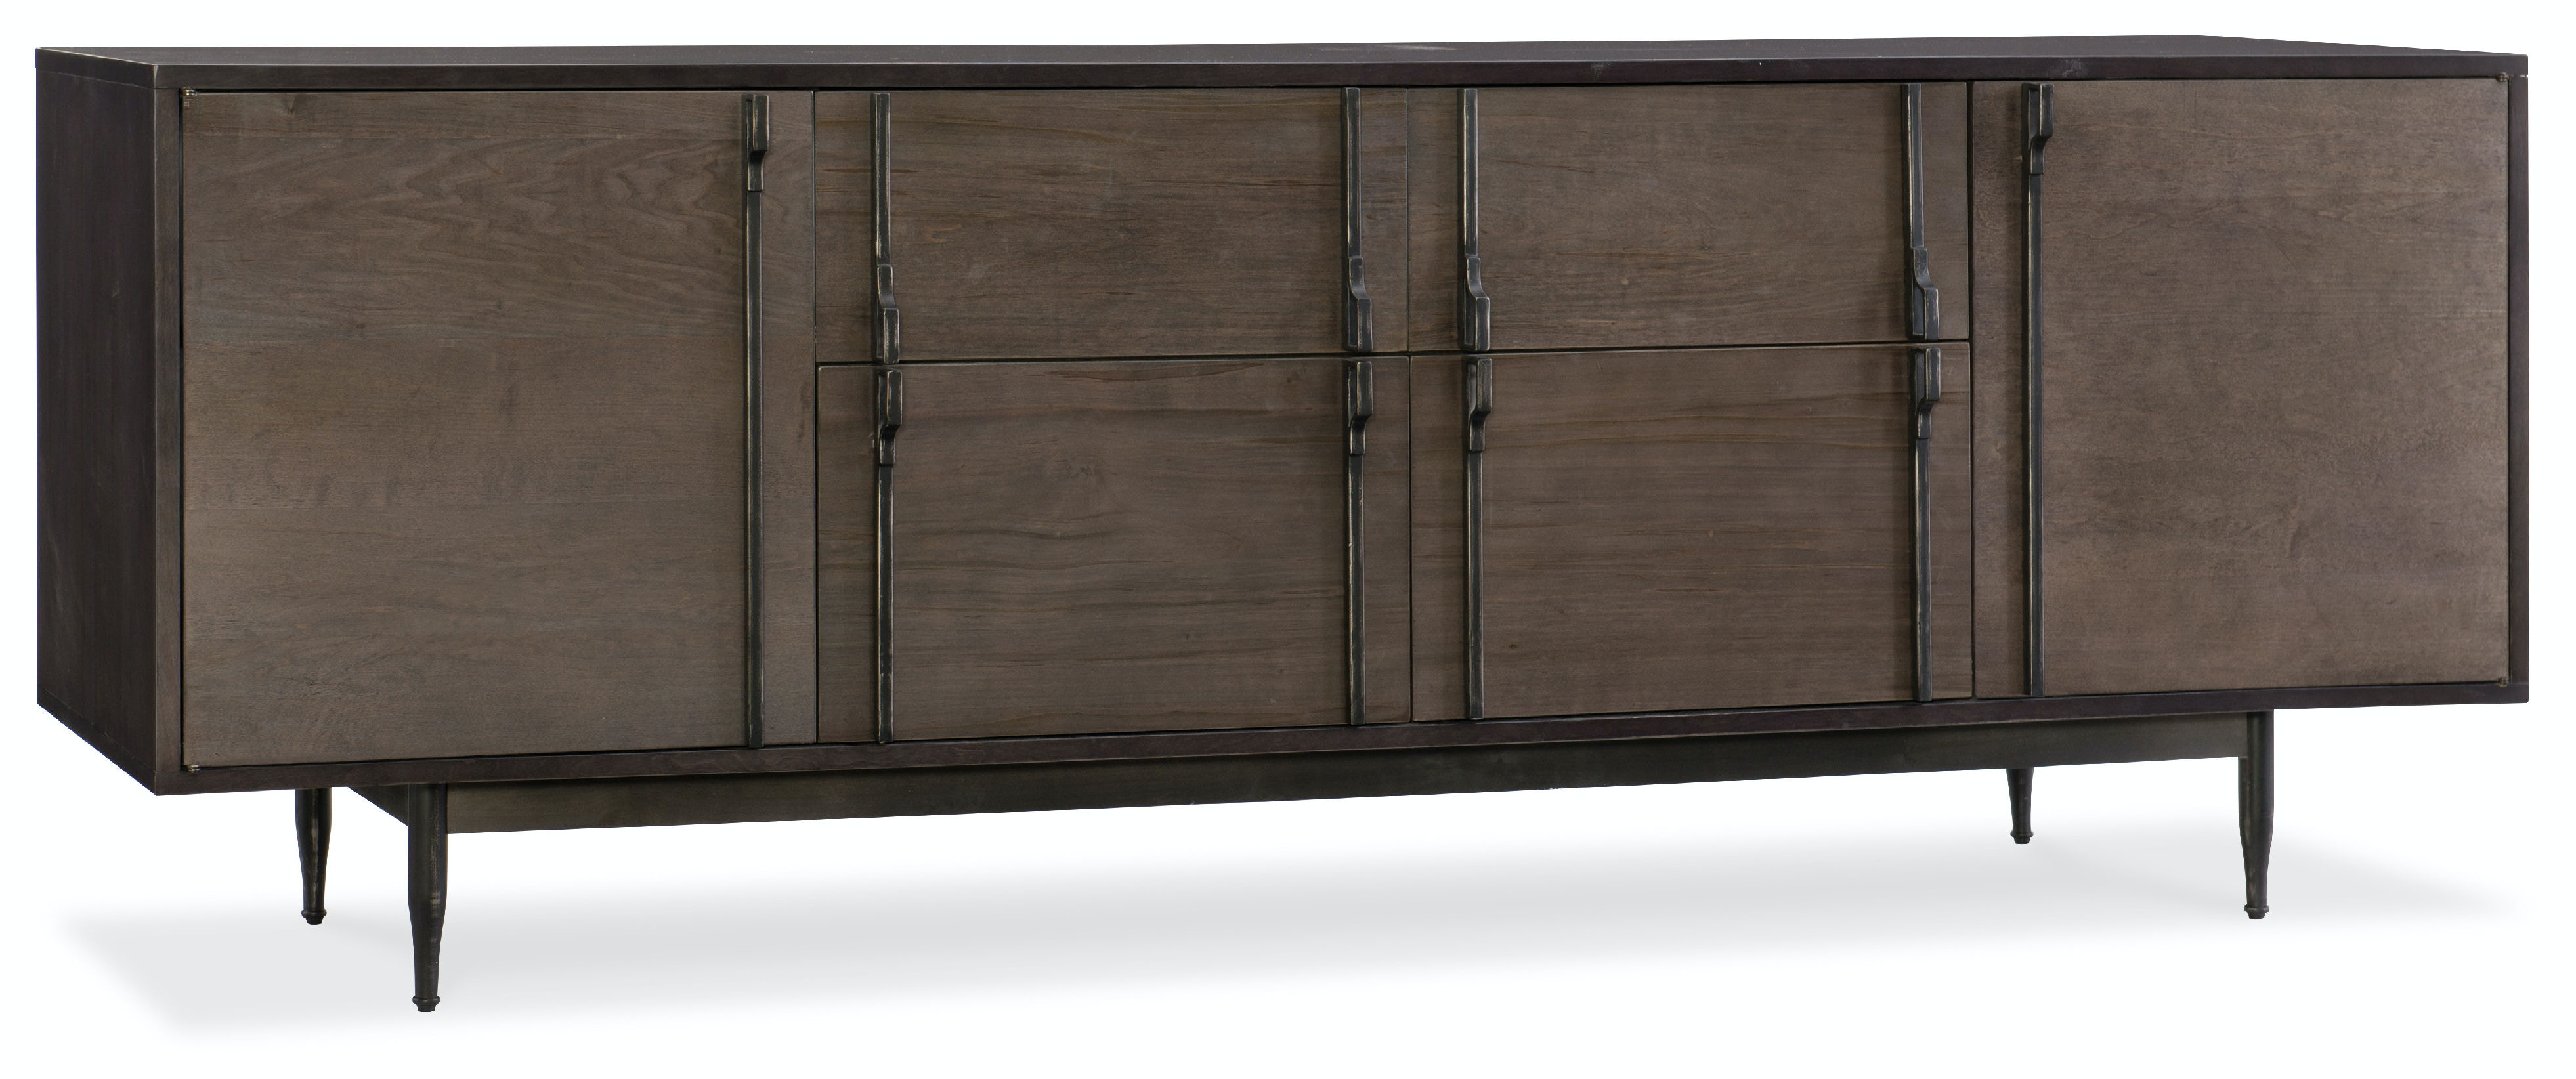 Hooker Furniture Wormy Maple Console 5587 85001 DKW